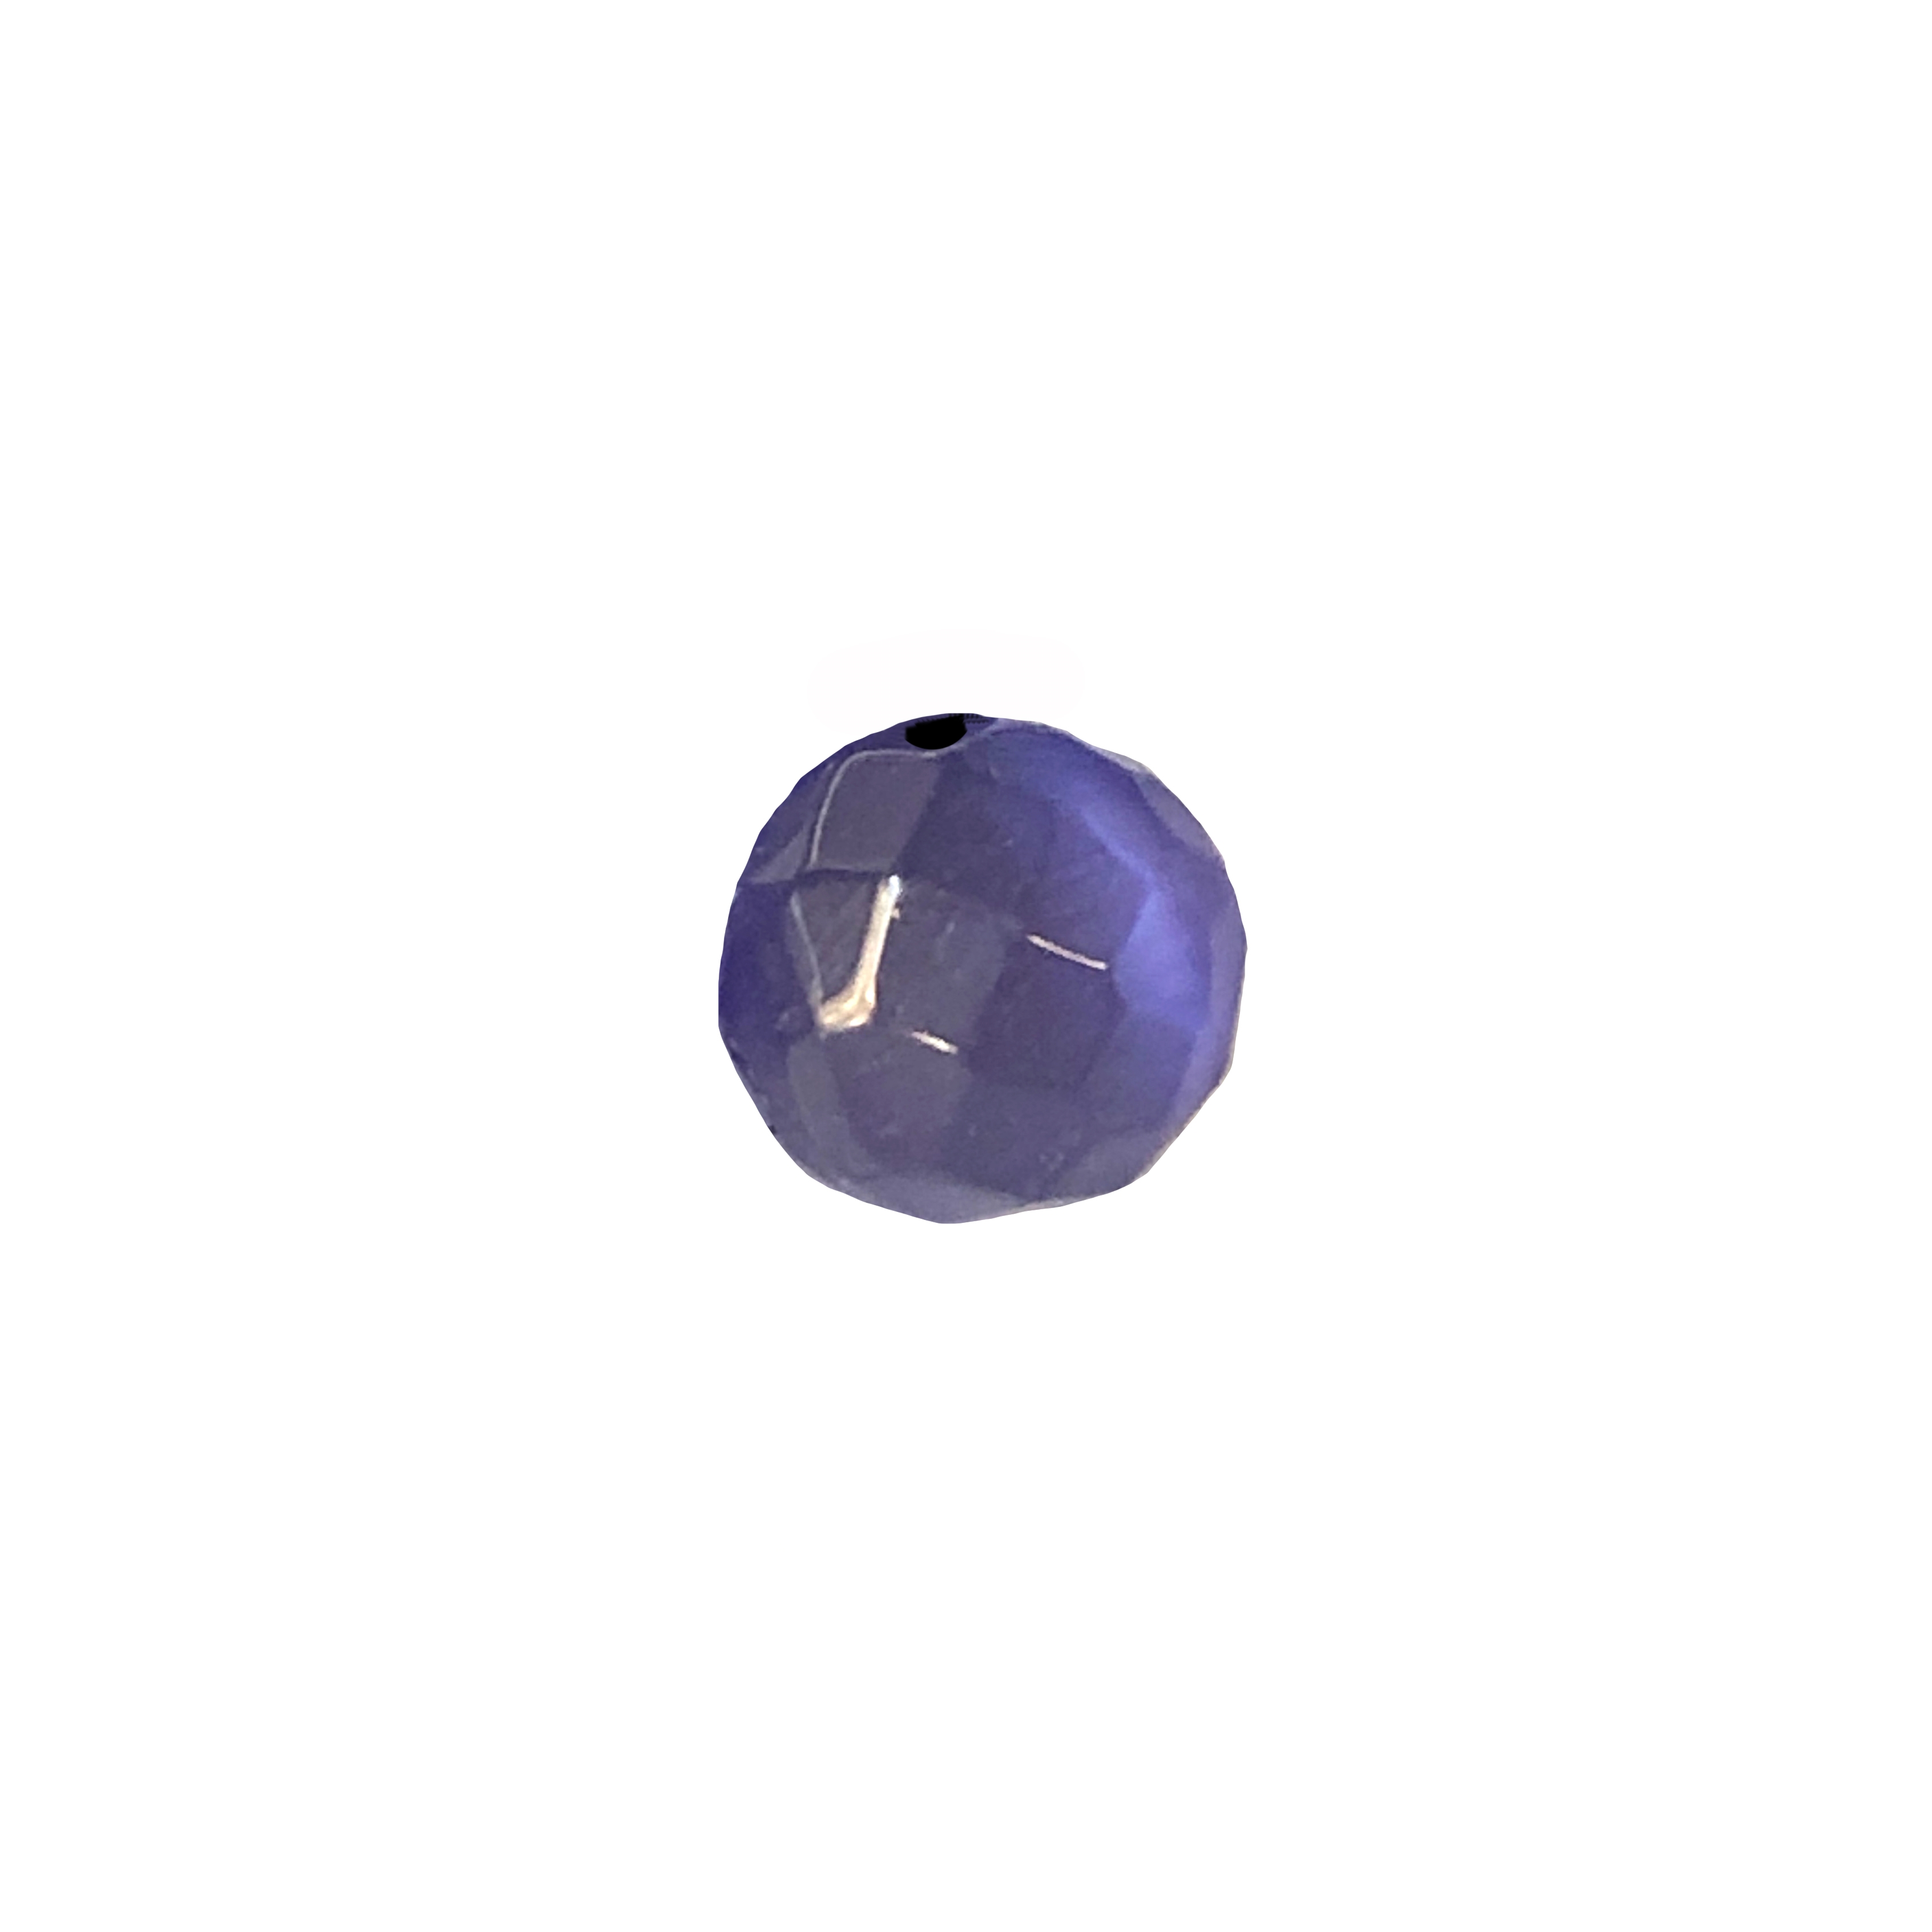 tanzanite purple cat's eye beads, glass beads, fiber optic glass, glass, cat's eye, purple beads, round, glossy shine, faceted beads, US made, B'sue Boutiques, jewelry stone, 10mm, 09717